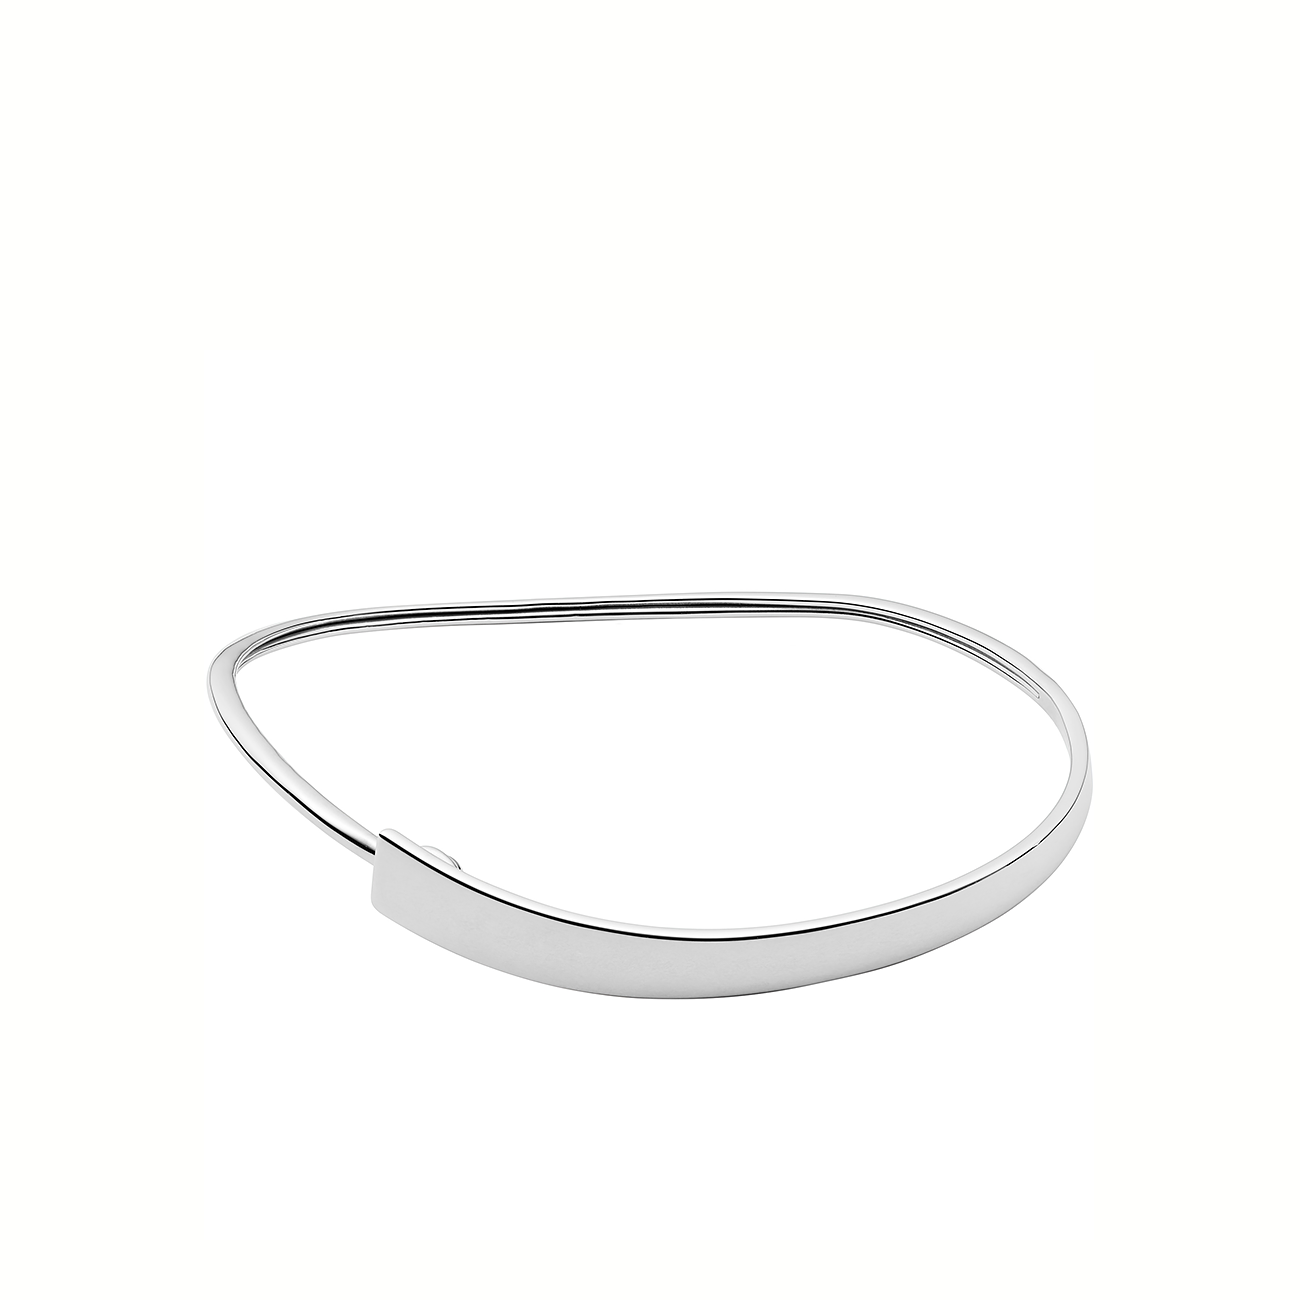 SKJ1085040 KARIANA BRACELET imagine produs